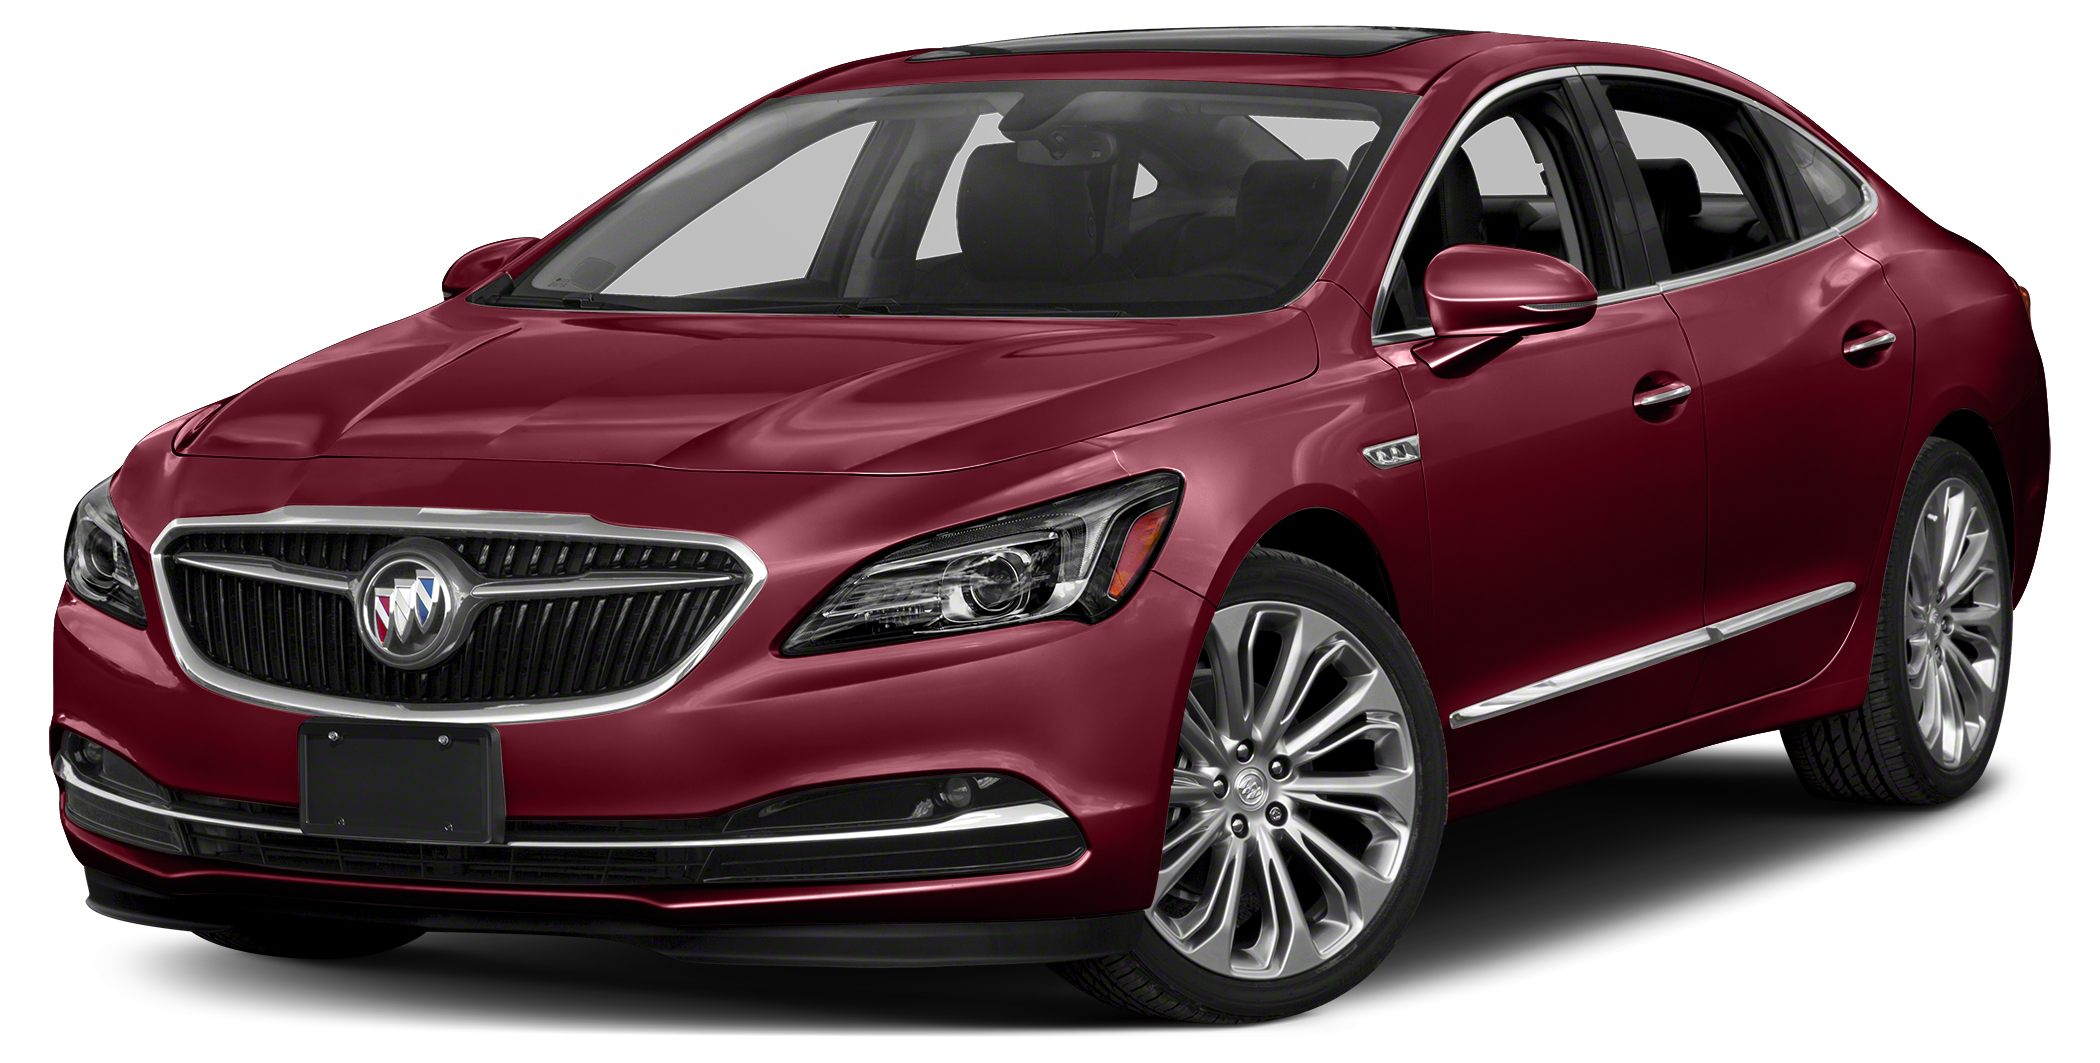 2017 Buick LaCrosse Premium In the all-new 2017 LaCrosse staying comfortably connected on the go